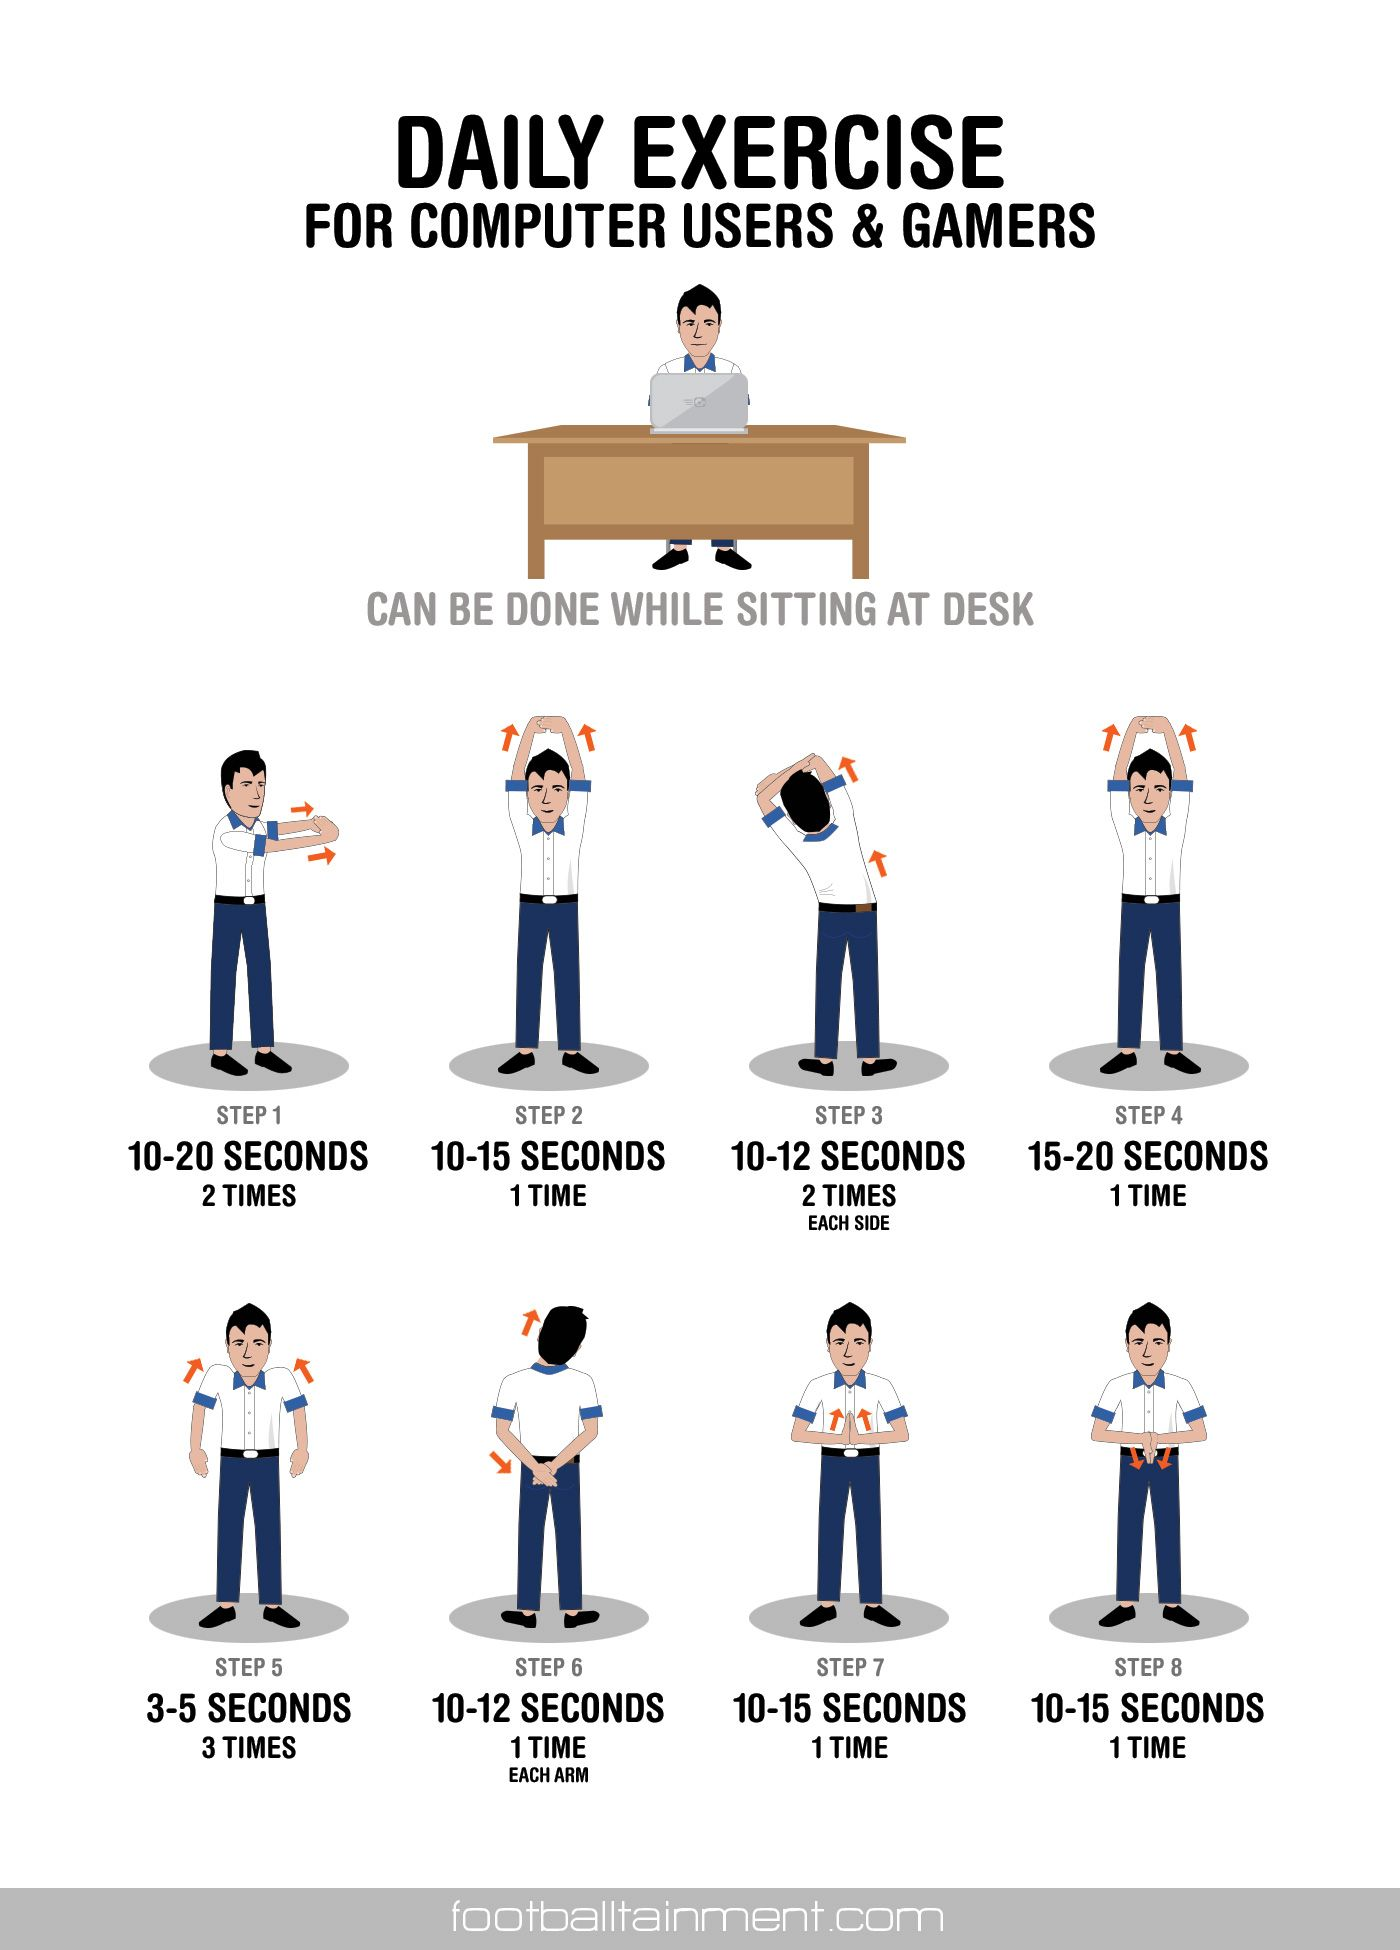 Office Chair Exercises For Abs Cushion To Relieve Back Pain Work Desk Daily Exercise Gamers And Computer Which Can